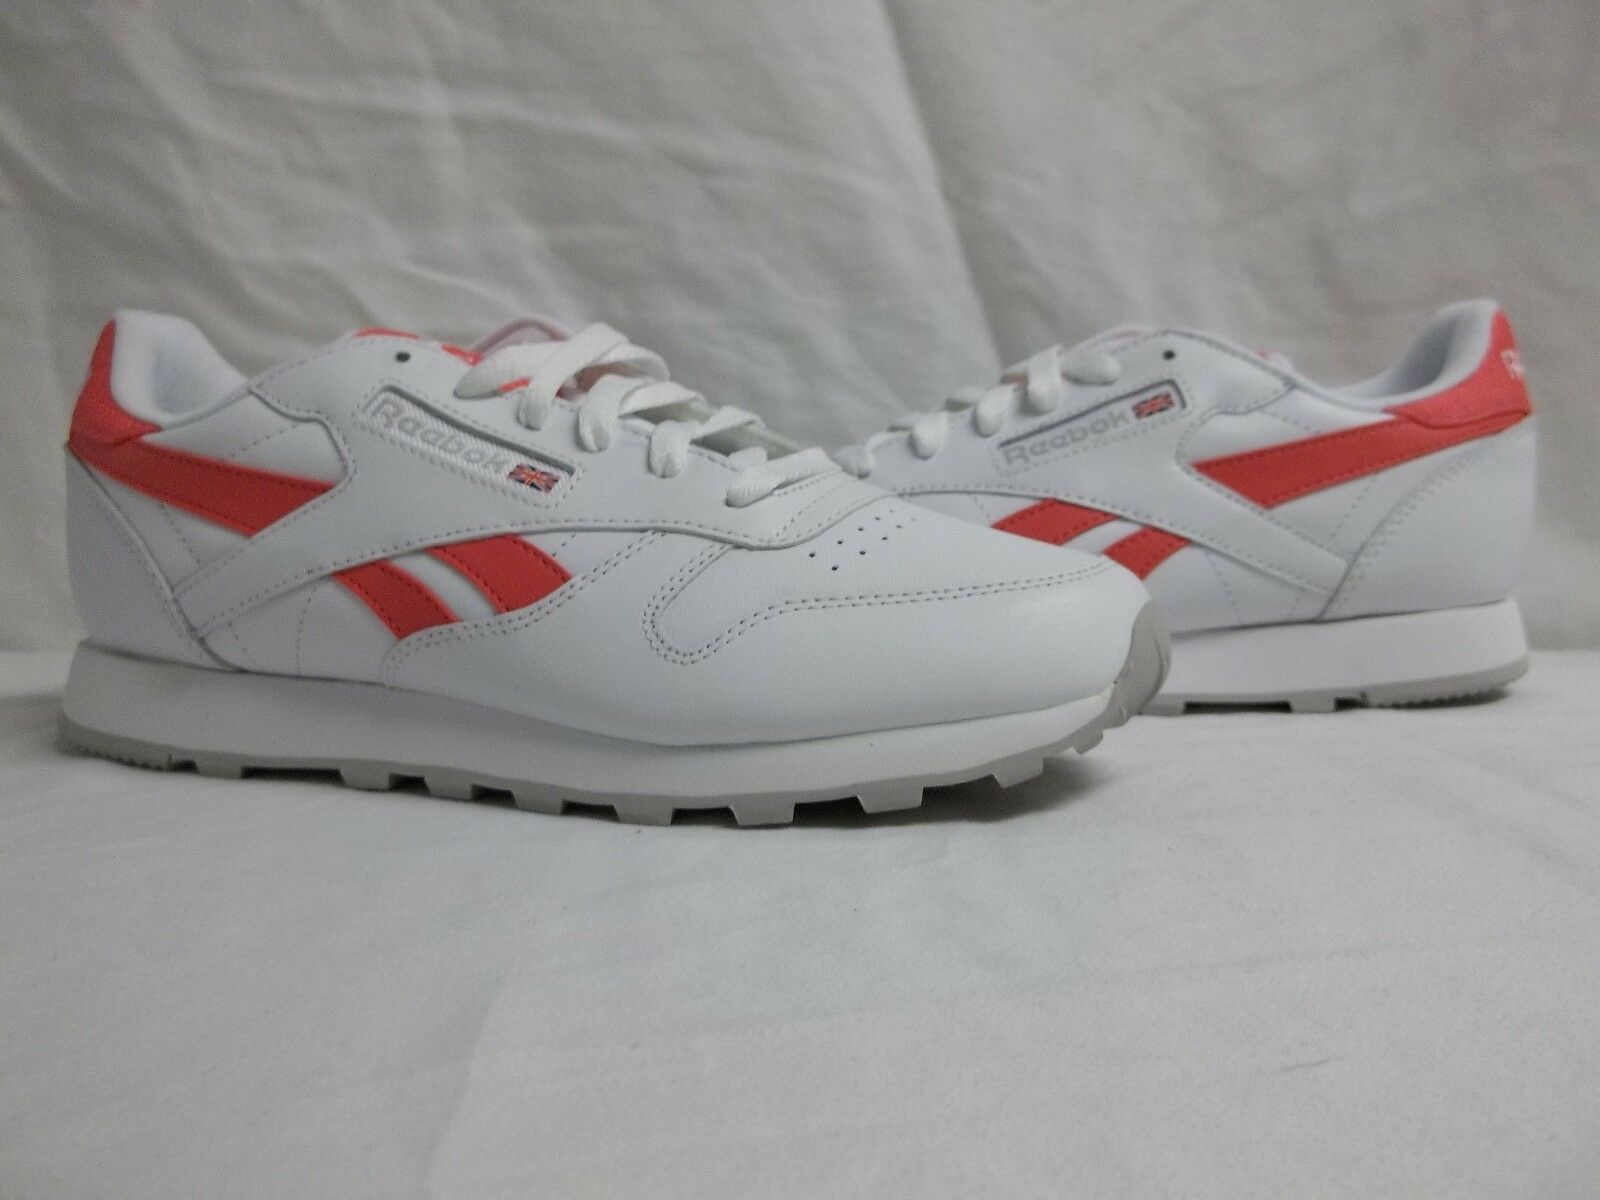 Reebok Size 5 M Classic Leather Pop White Running Sneakers New Womens Shoes NWOB